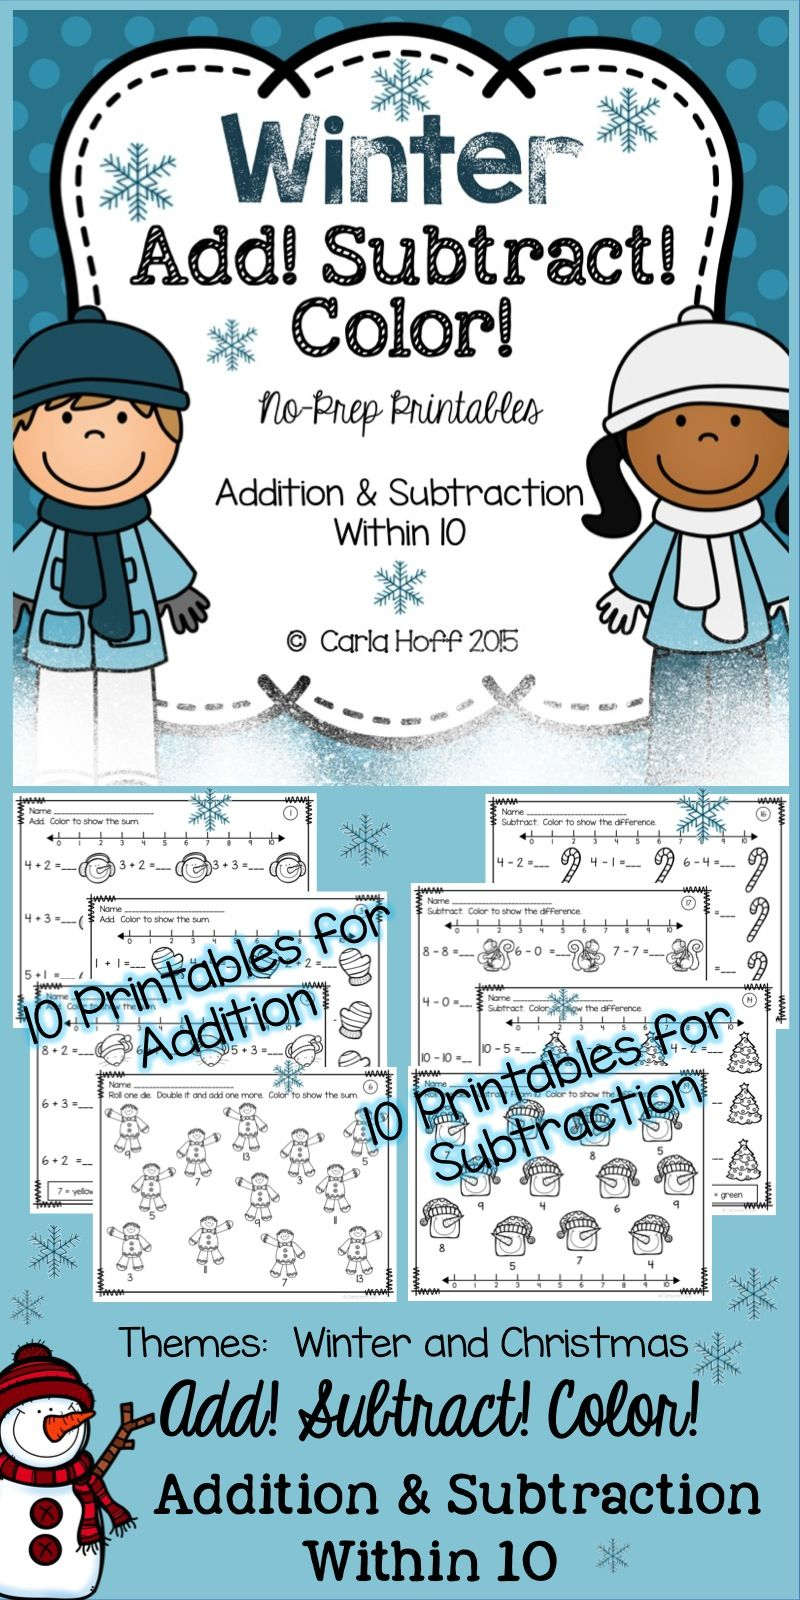 WINTER Add! Subtract! Color! 20 Printables for Addition ...